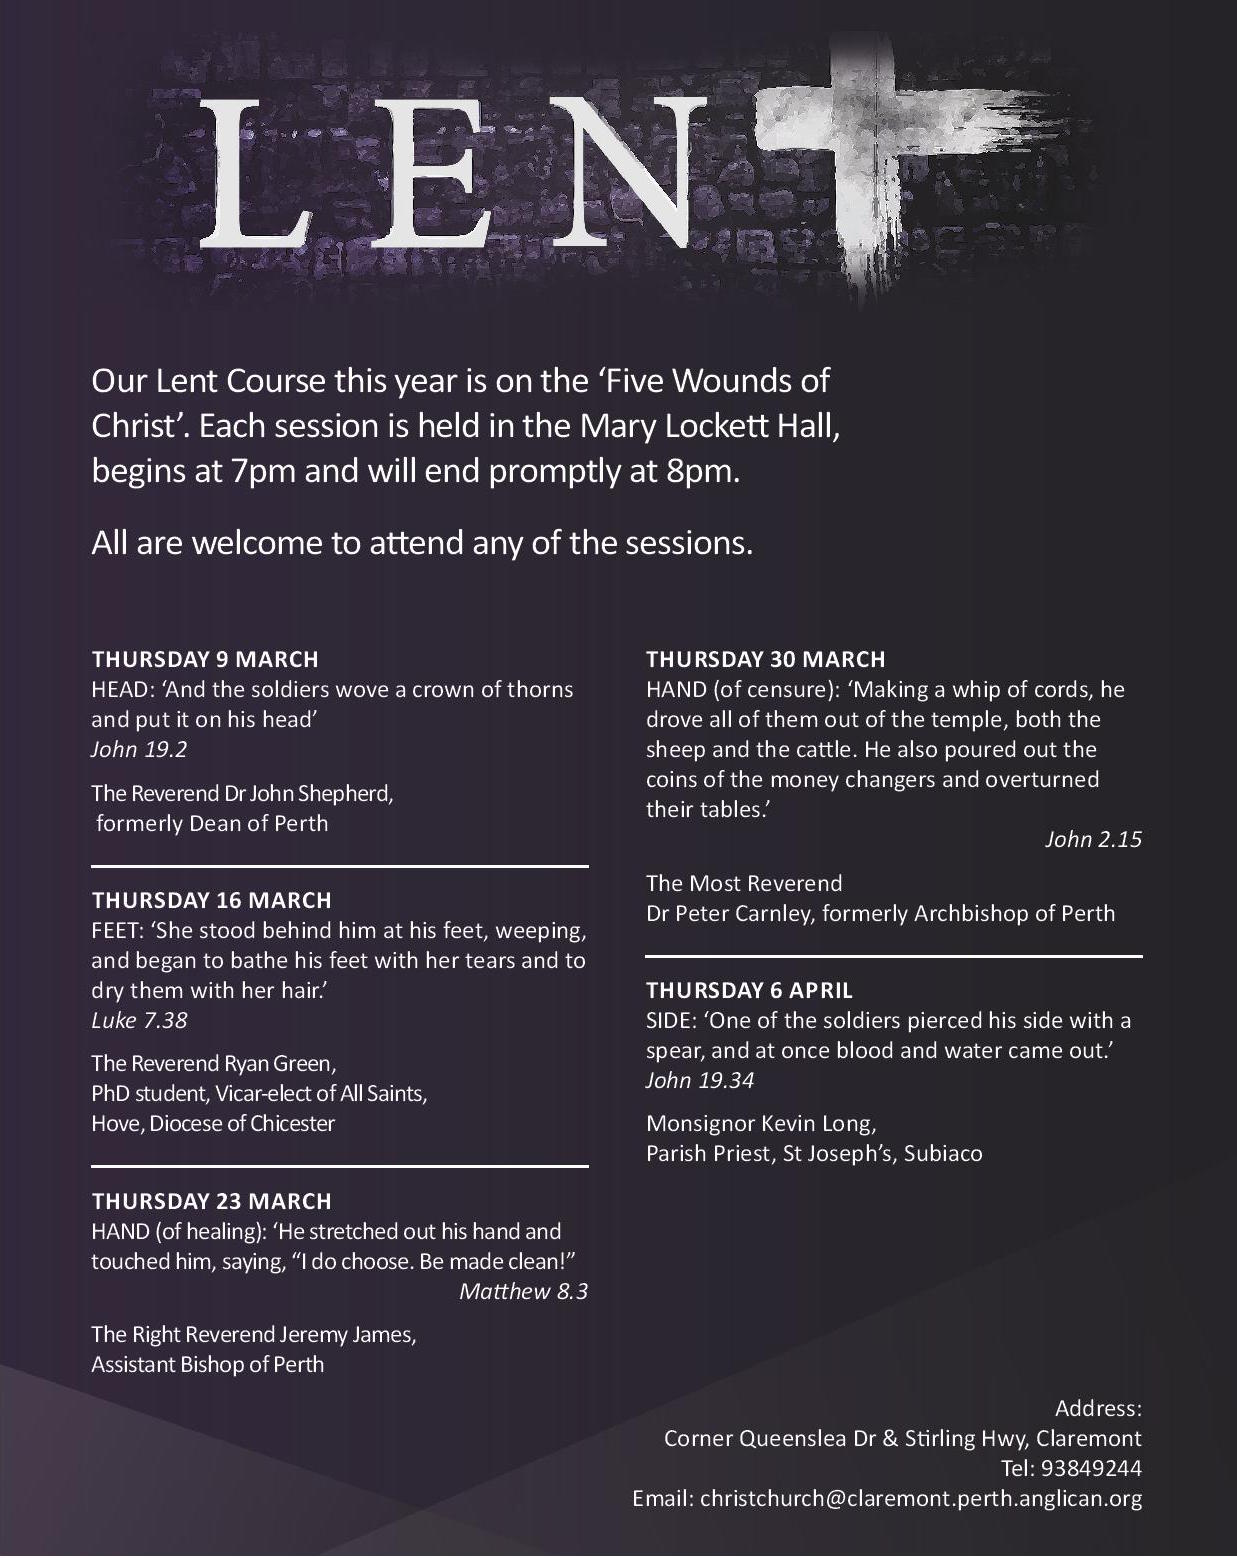 Lent Course at Christ Church Claremont